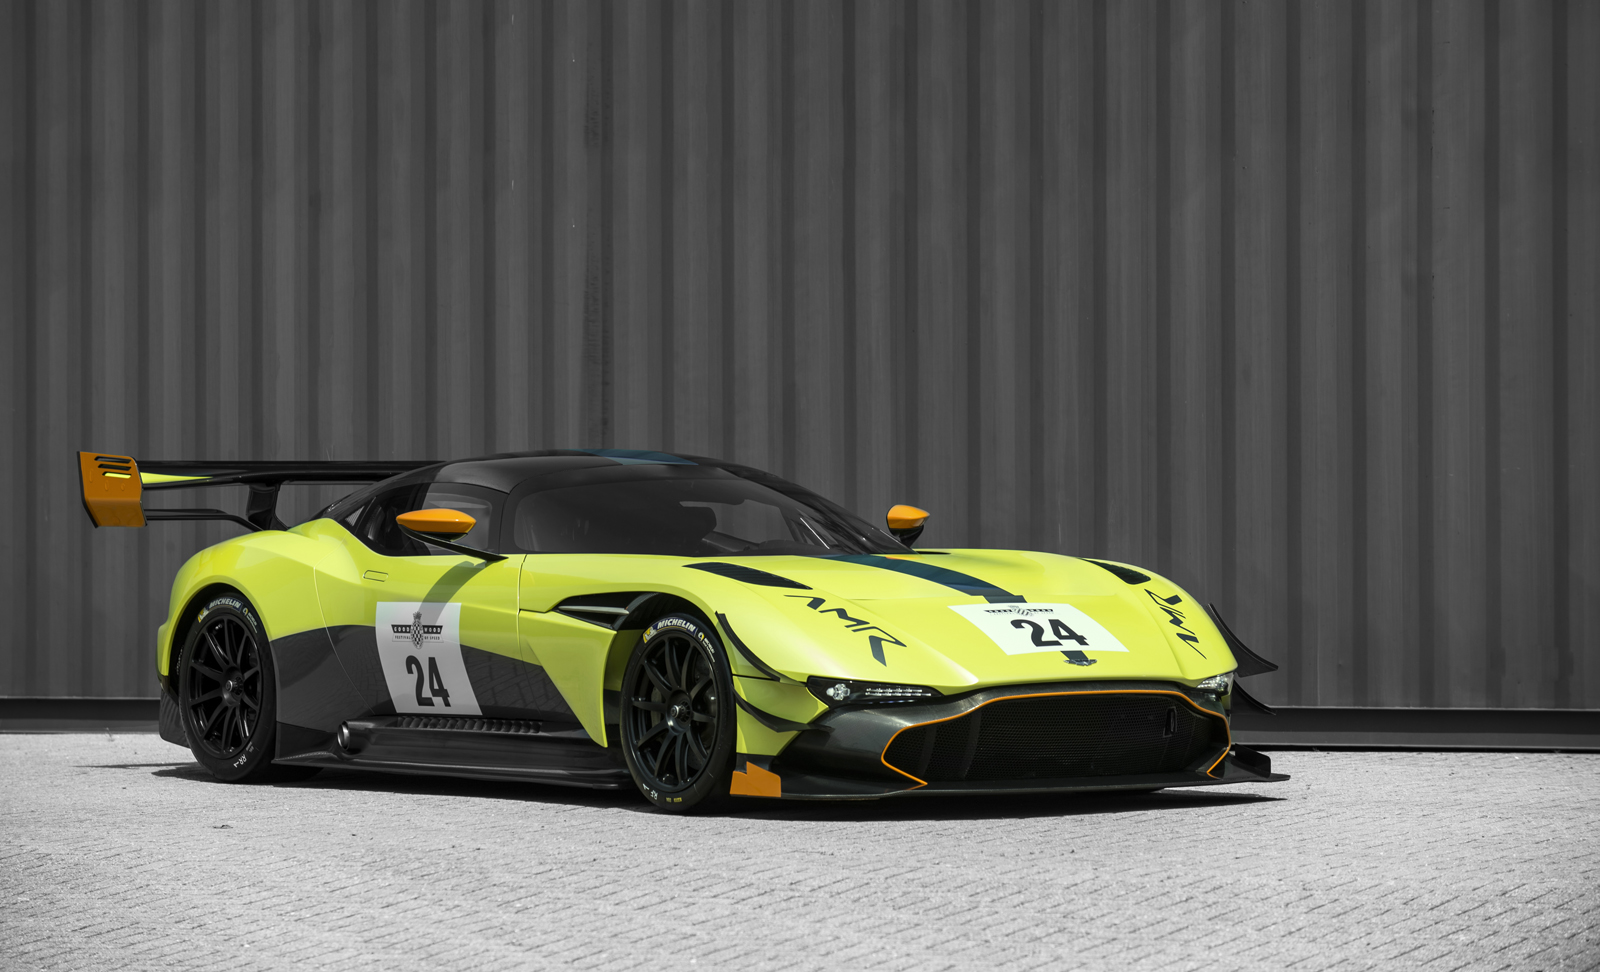 Introducing the Aston Martin Vulcan AMR Pro